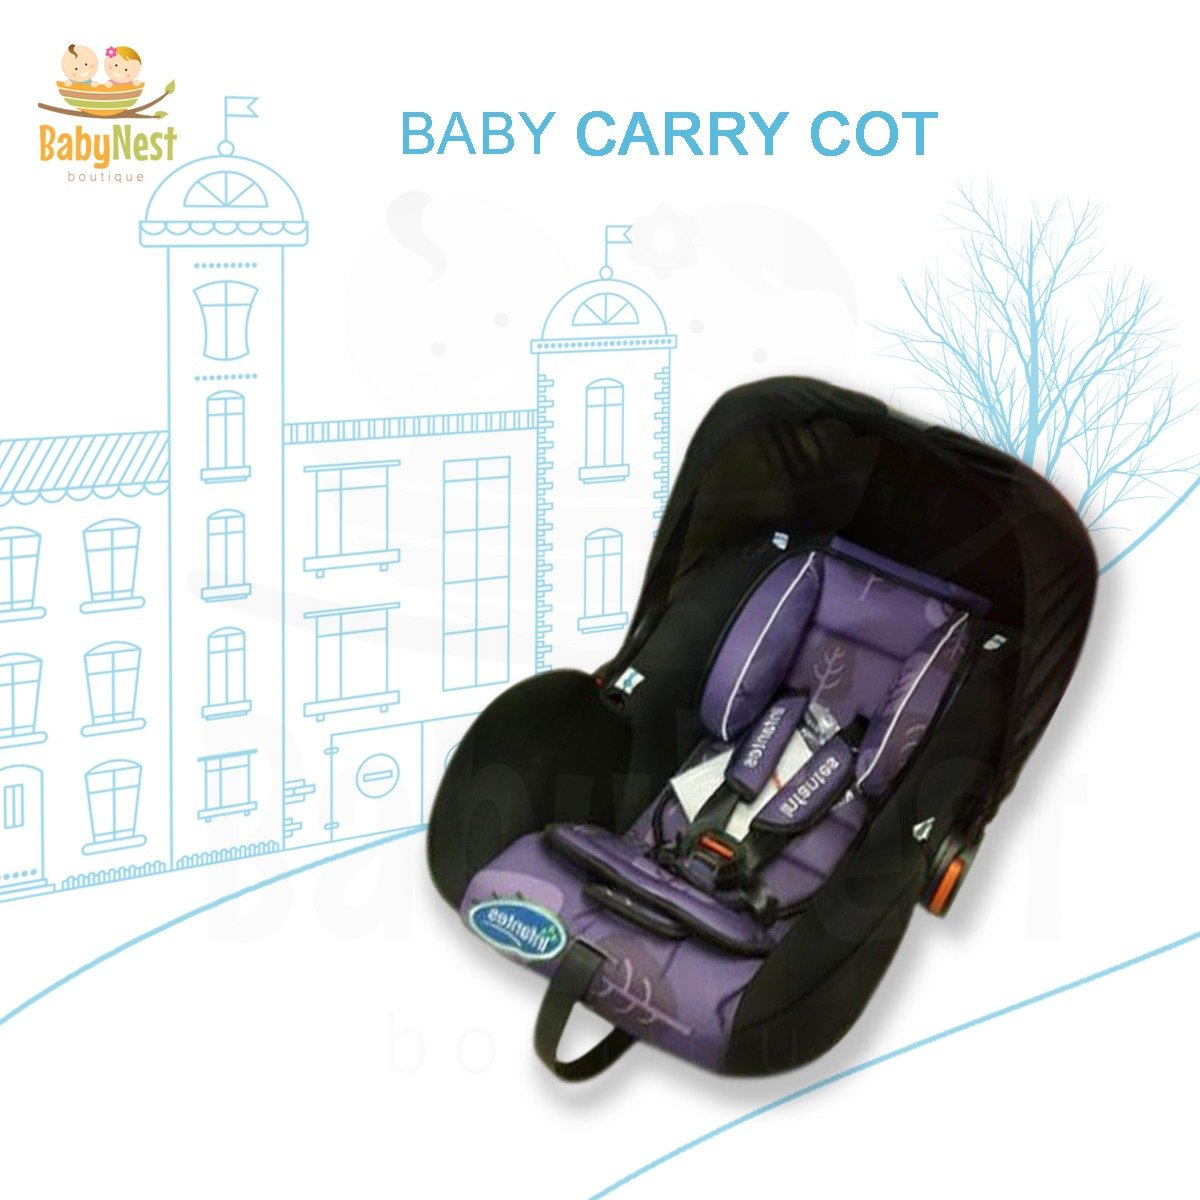 Baby Car Seats Price in Pakistan | Baby Nest Boutique